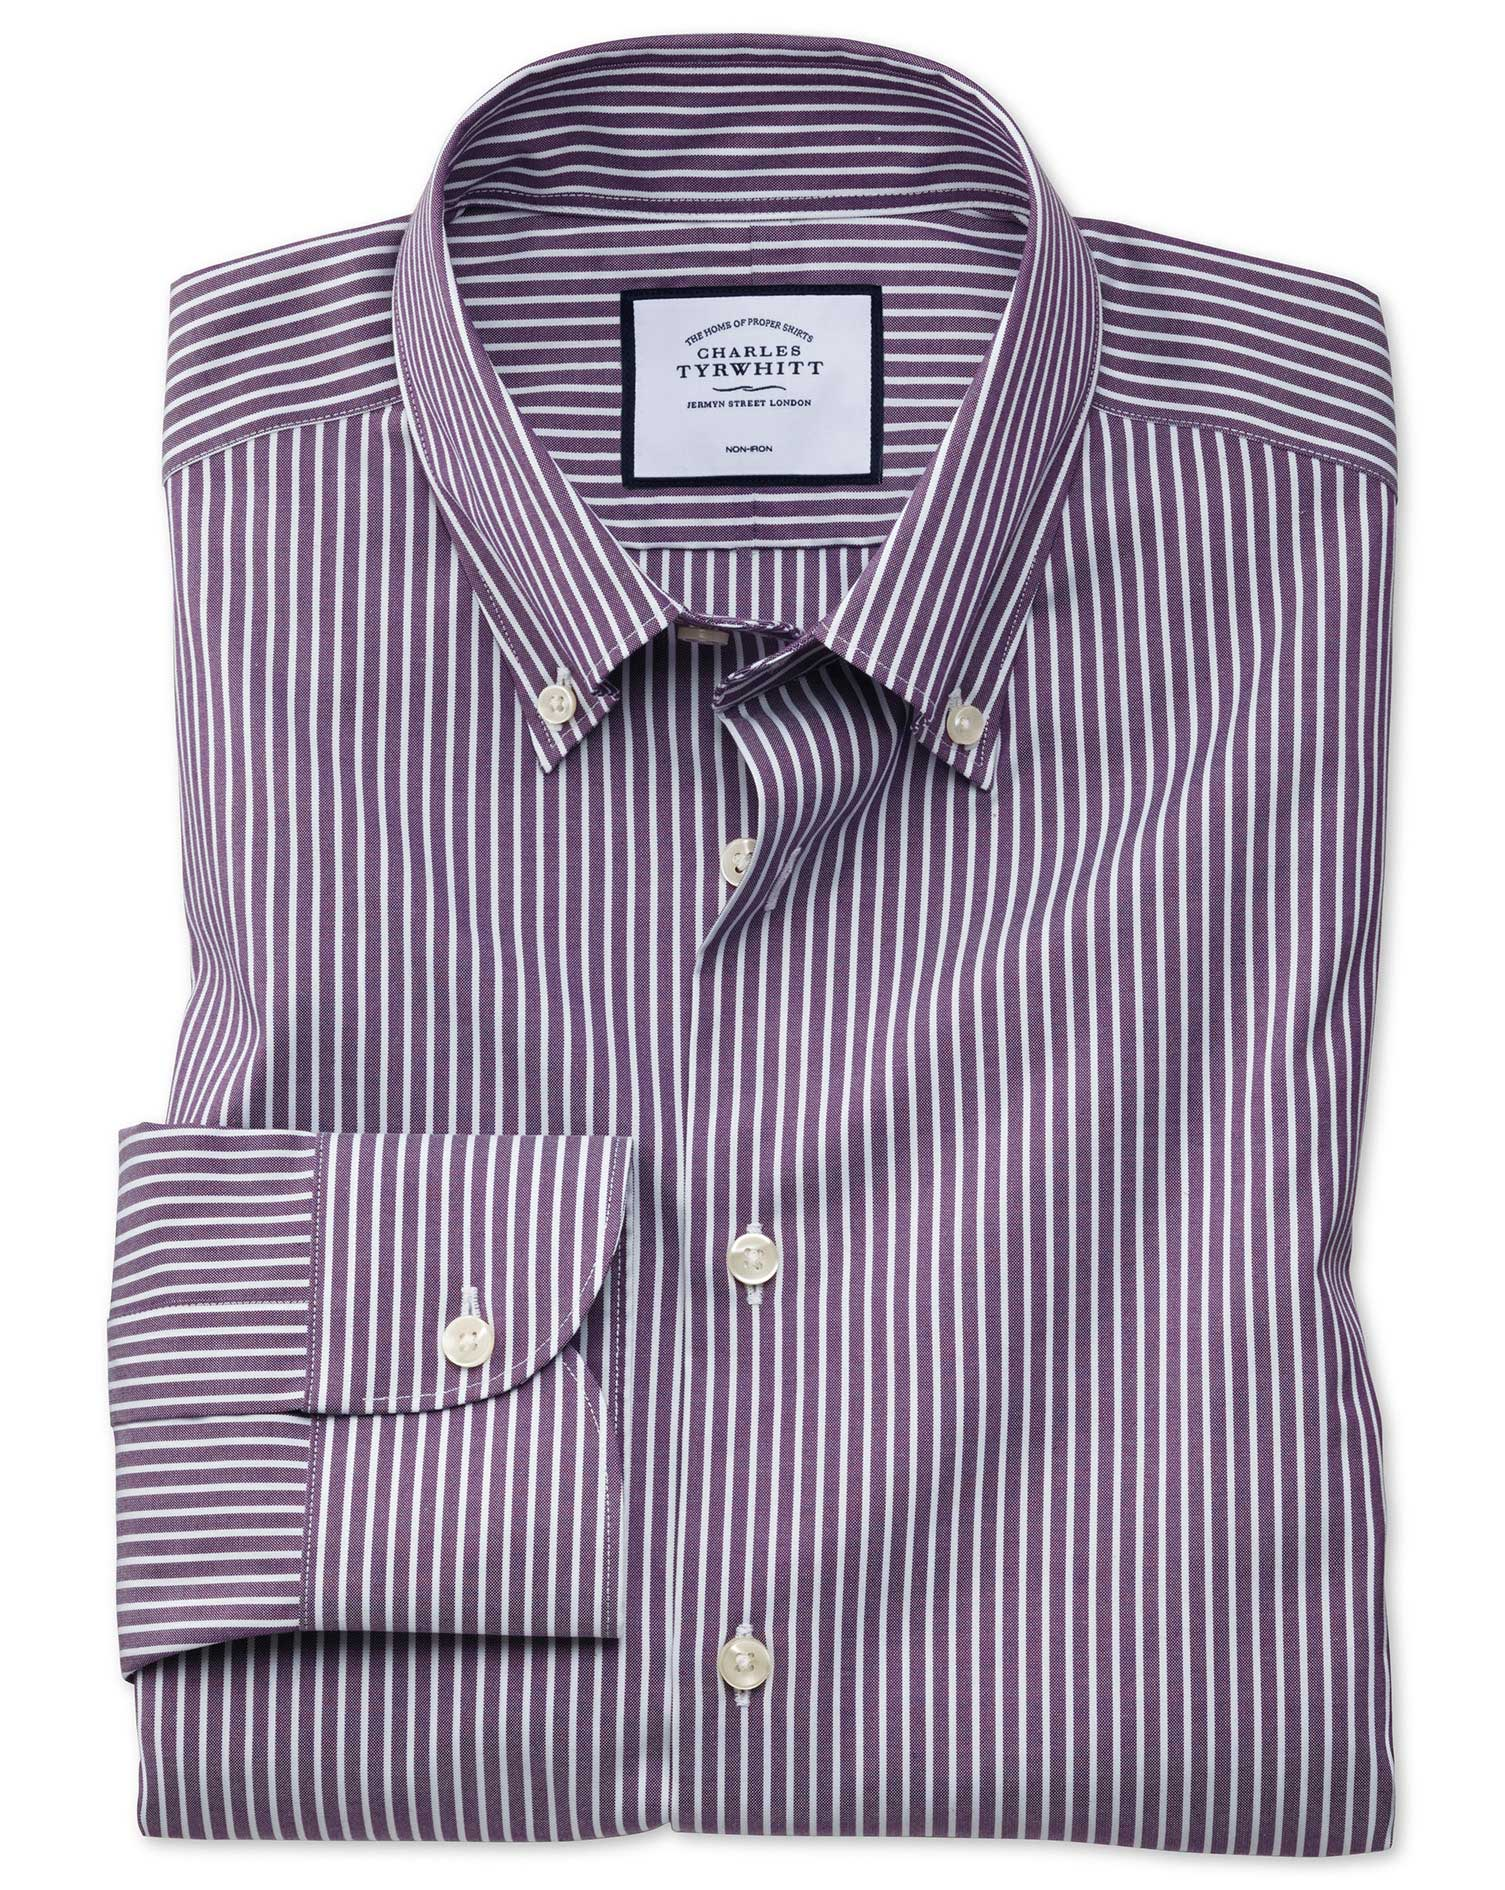 Slim Fit Business Casual Non-Iron Button-Down Purple and White Stripe Cotton Formal Shirt Single Cuf